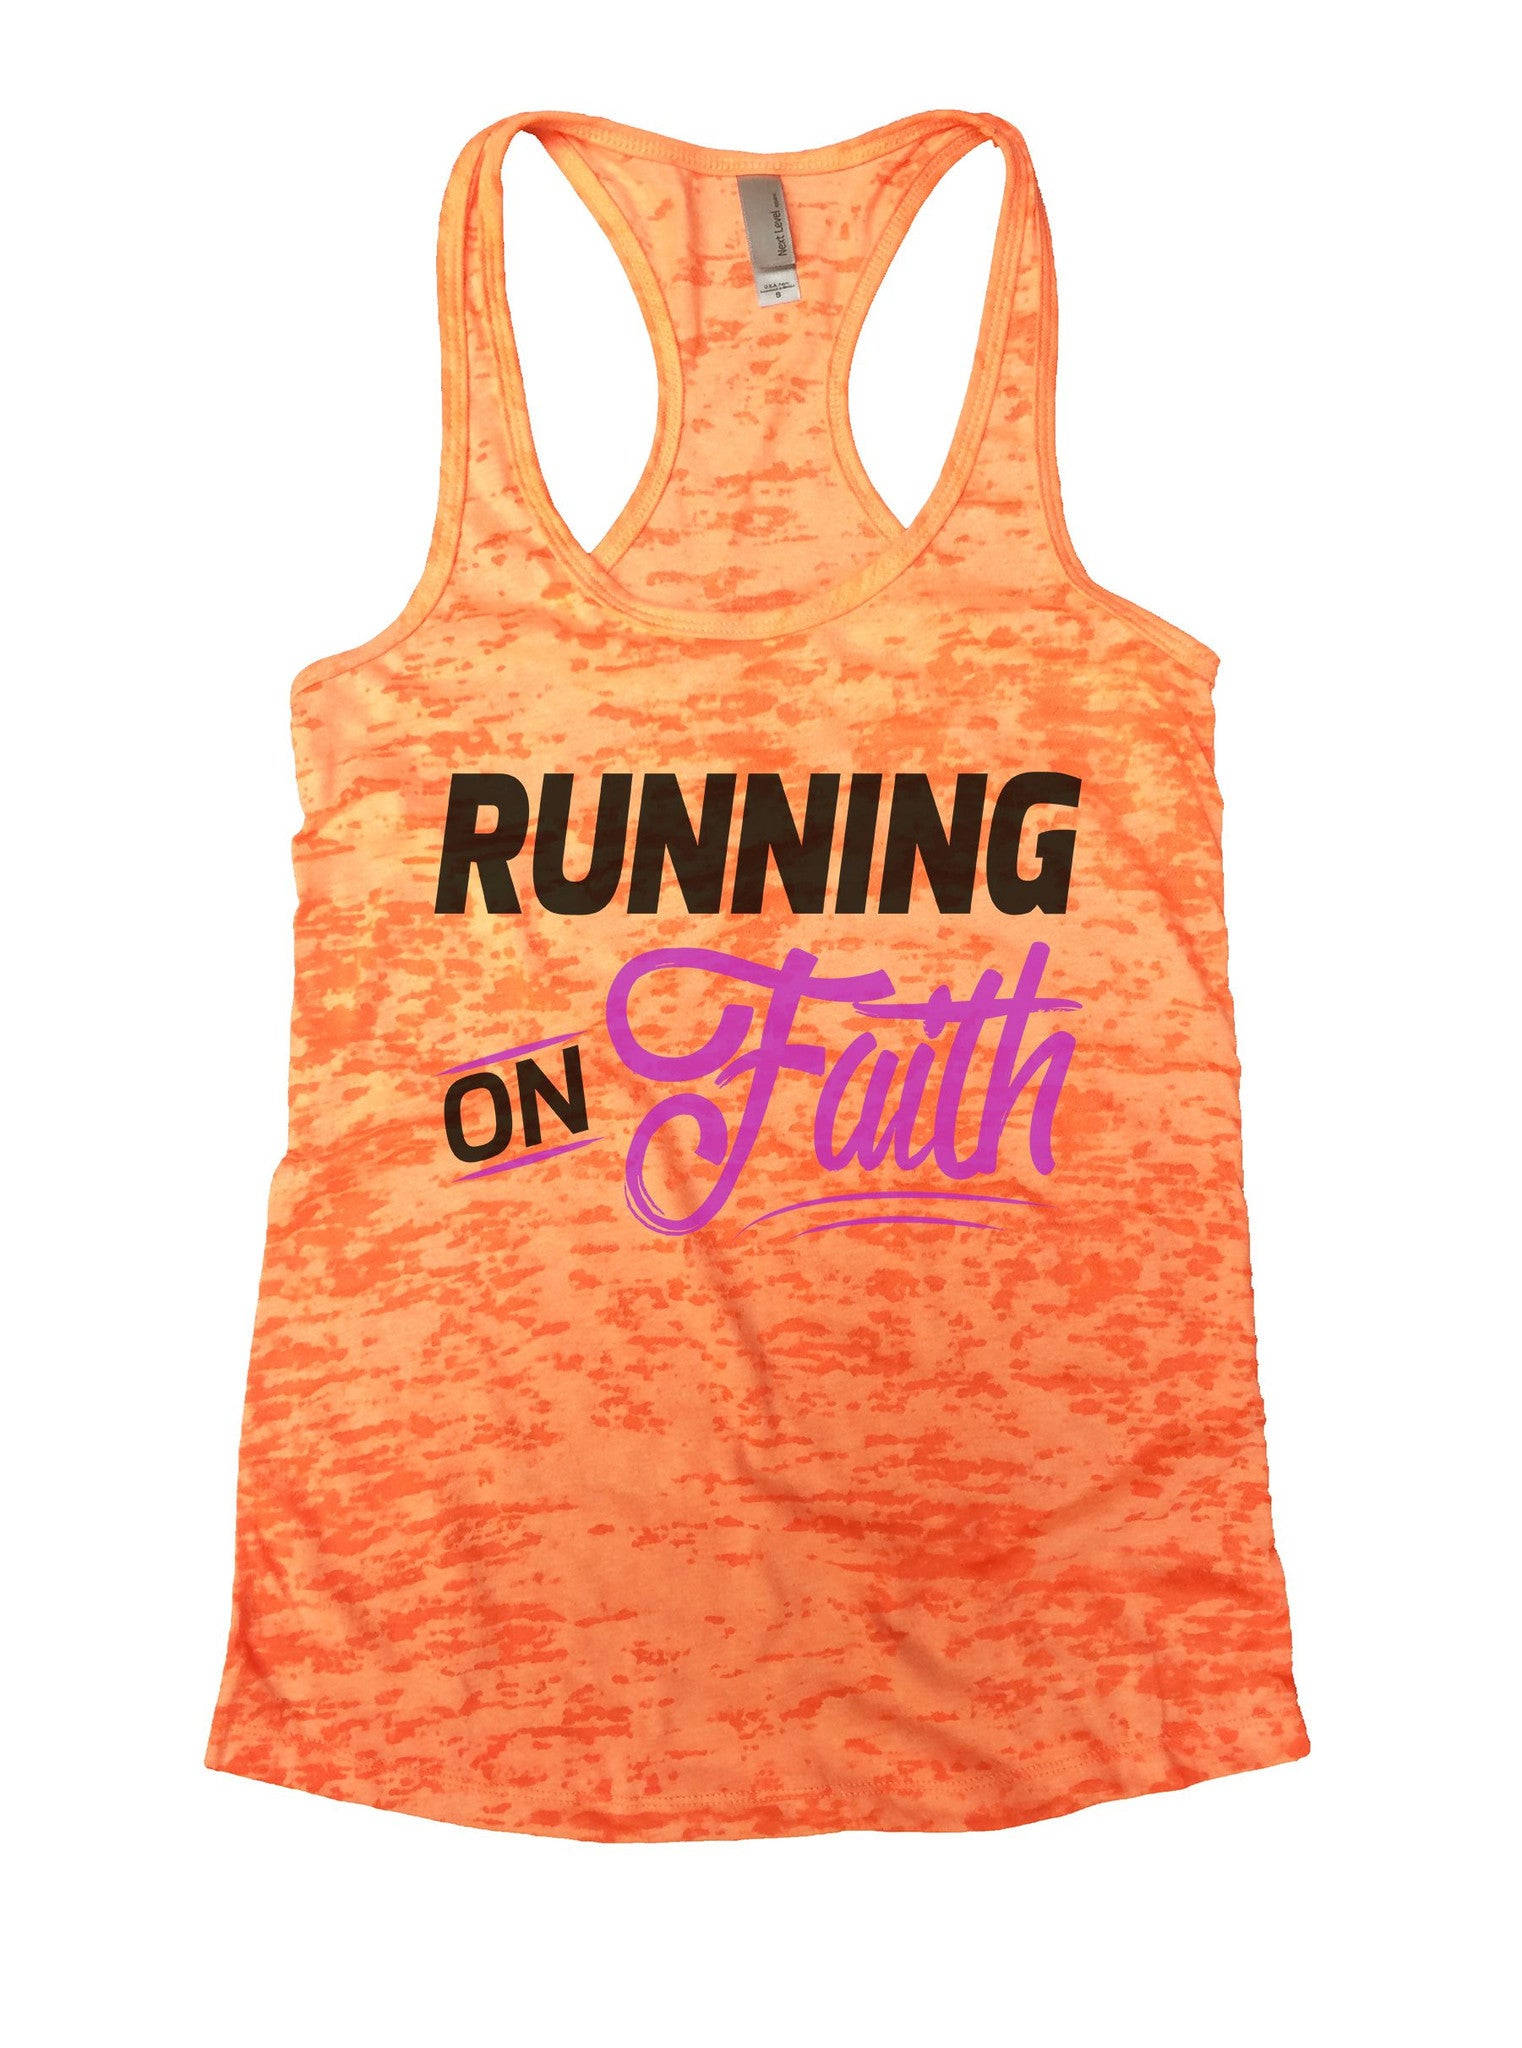 Running On Faith Burnout Tank Top By BurnoutTankTops.com - 1073 - Funny Shirts Tank Tops Burnouts and Triblends  - 3